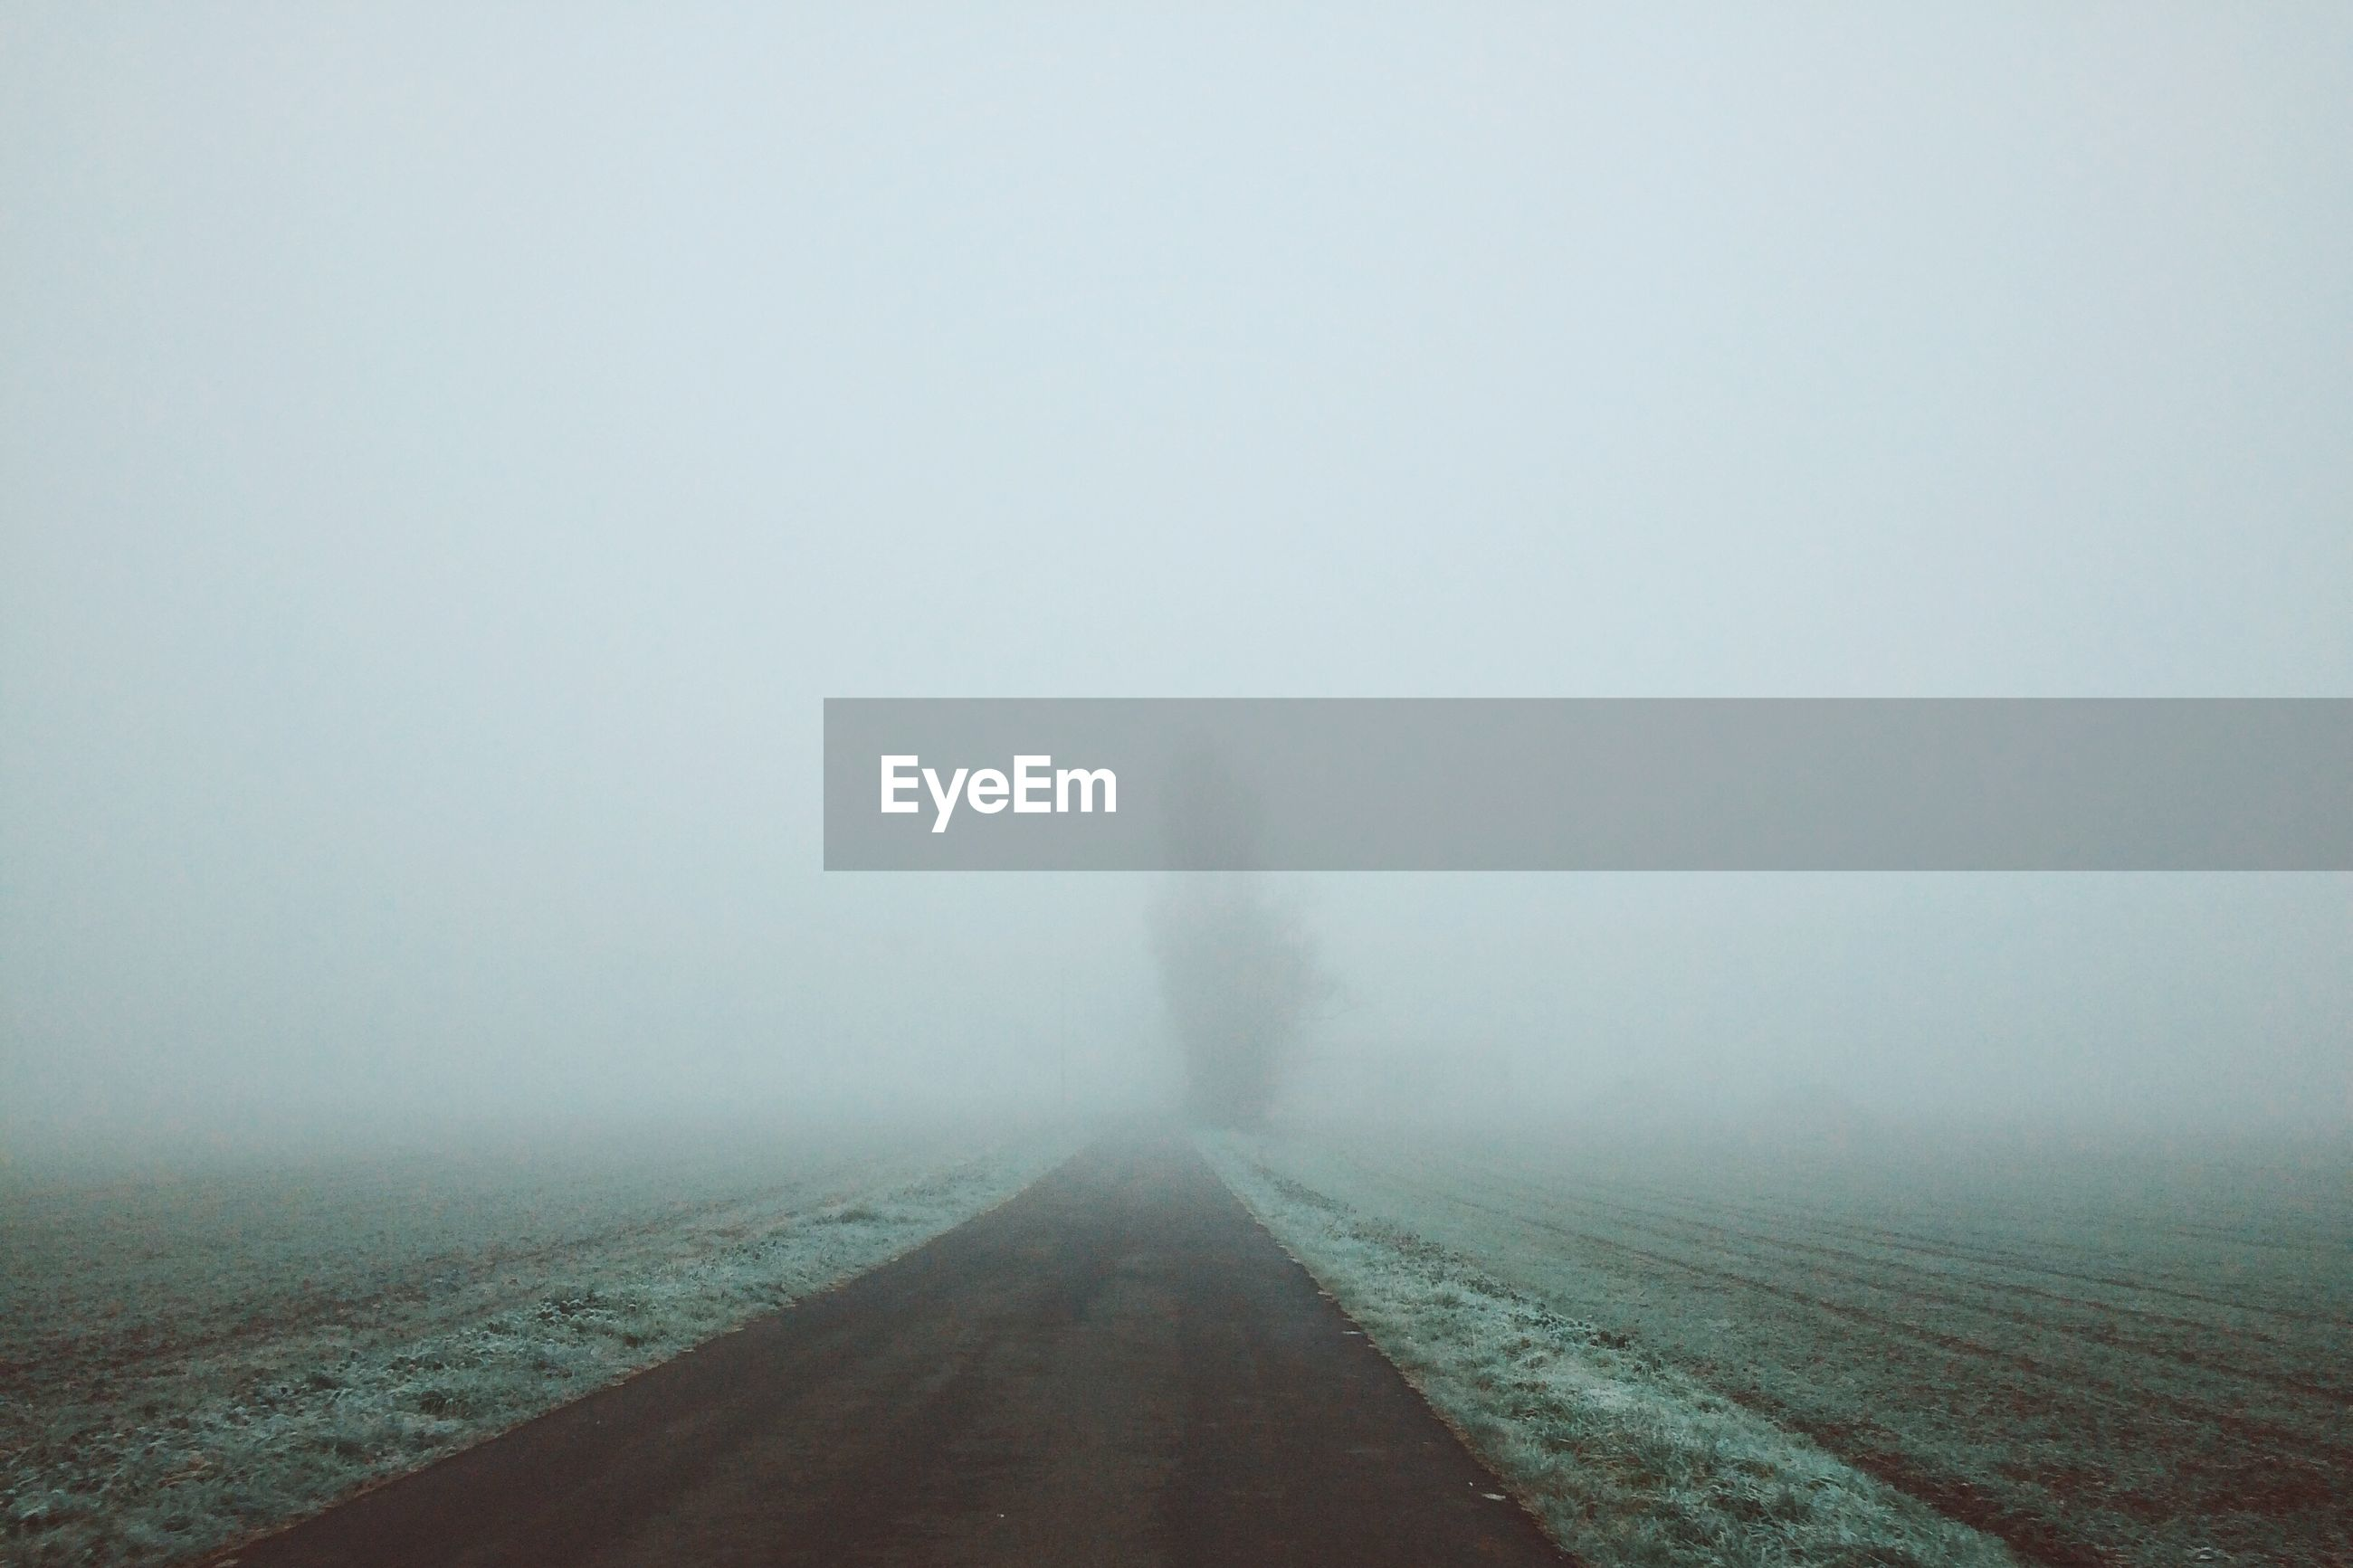 VIEW OF ROAD IN FOGGY WEATHER